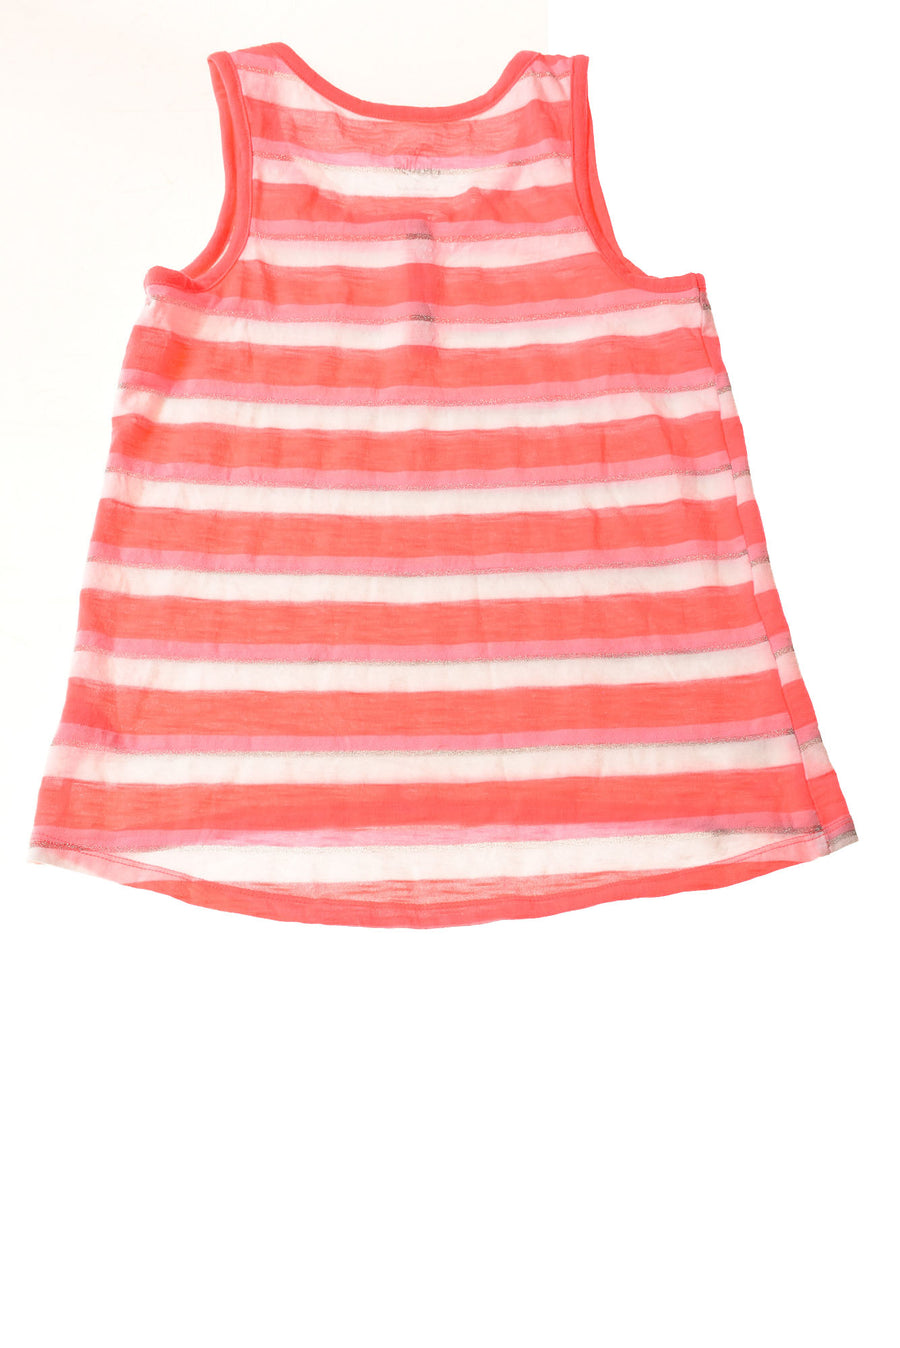 USED Justice Girl's Top 12 Pink & White